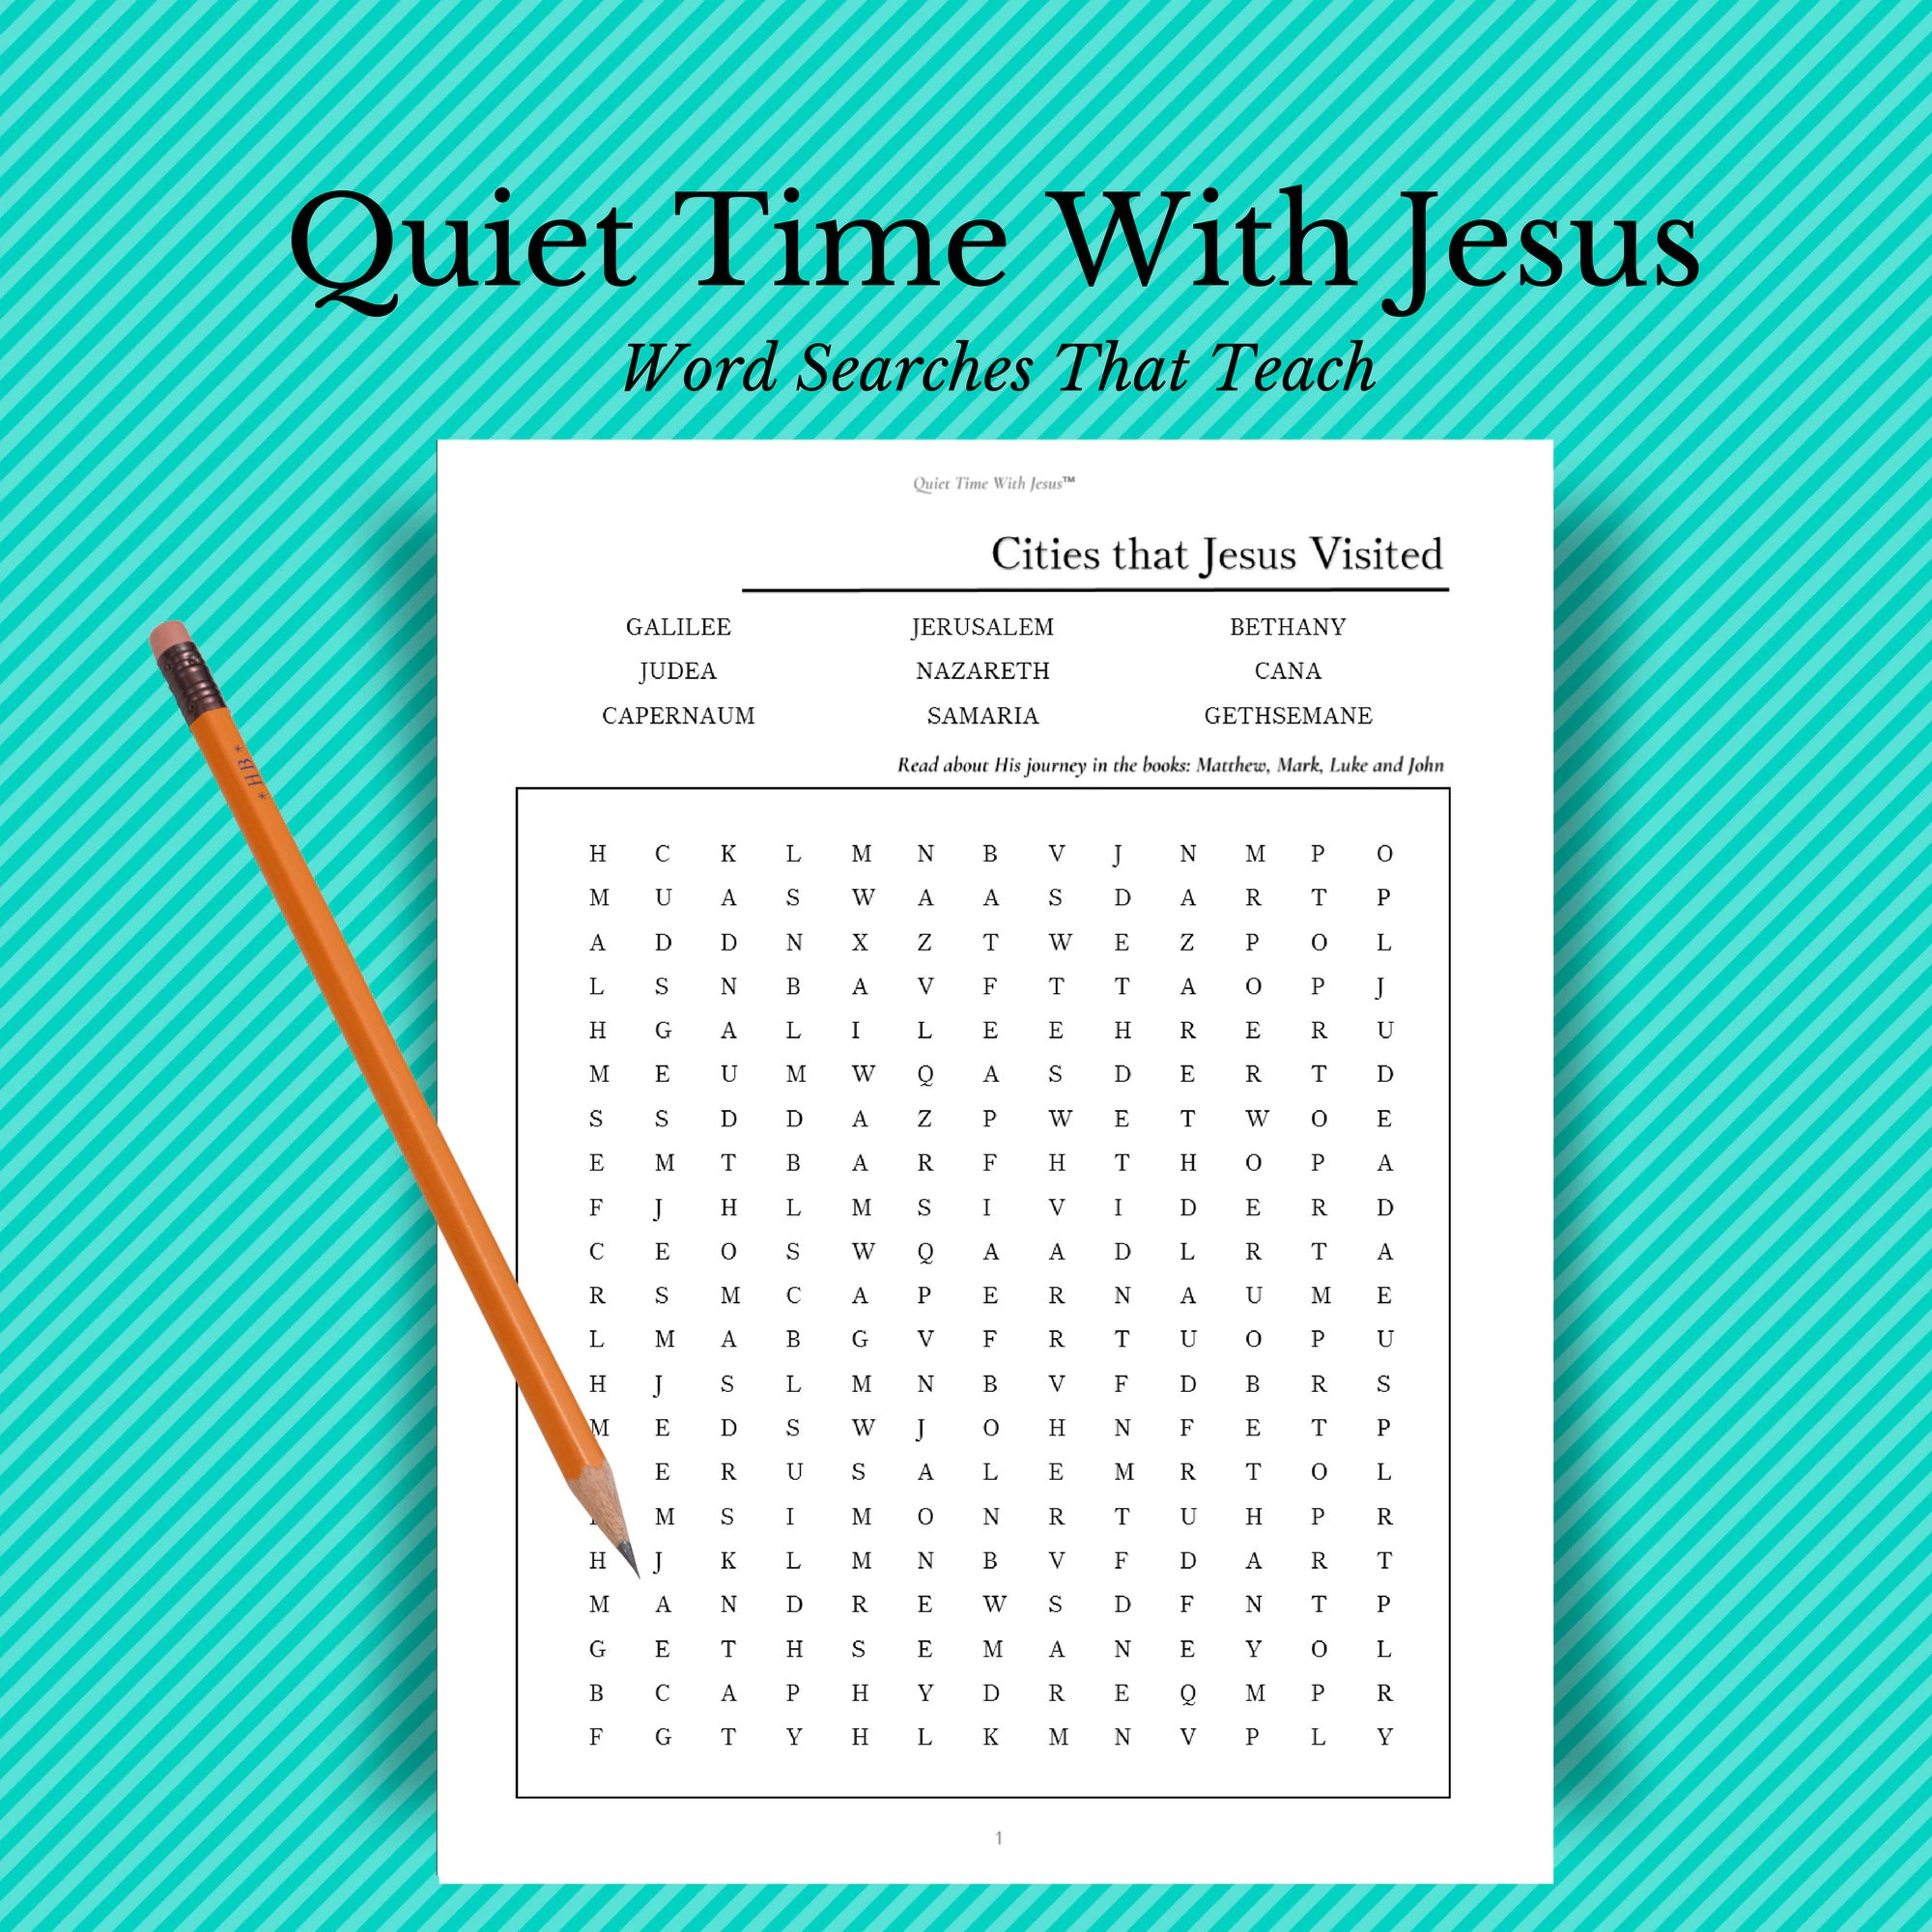 Bible Word Search Cities Jesus Visited Word